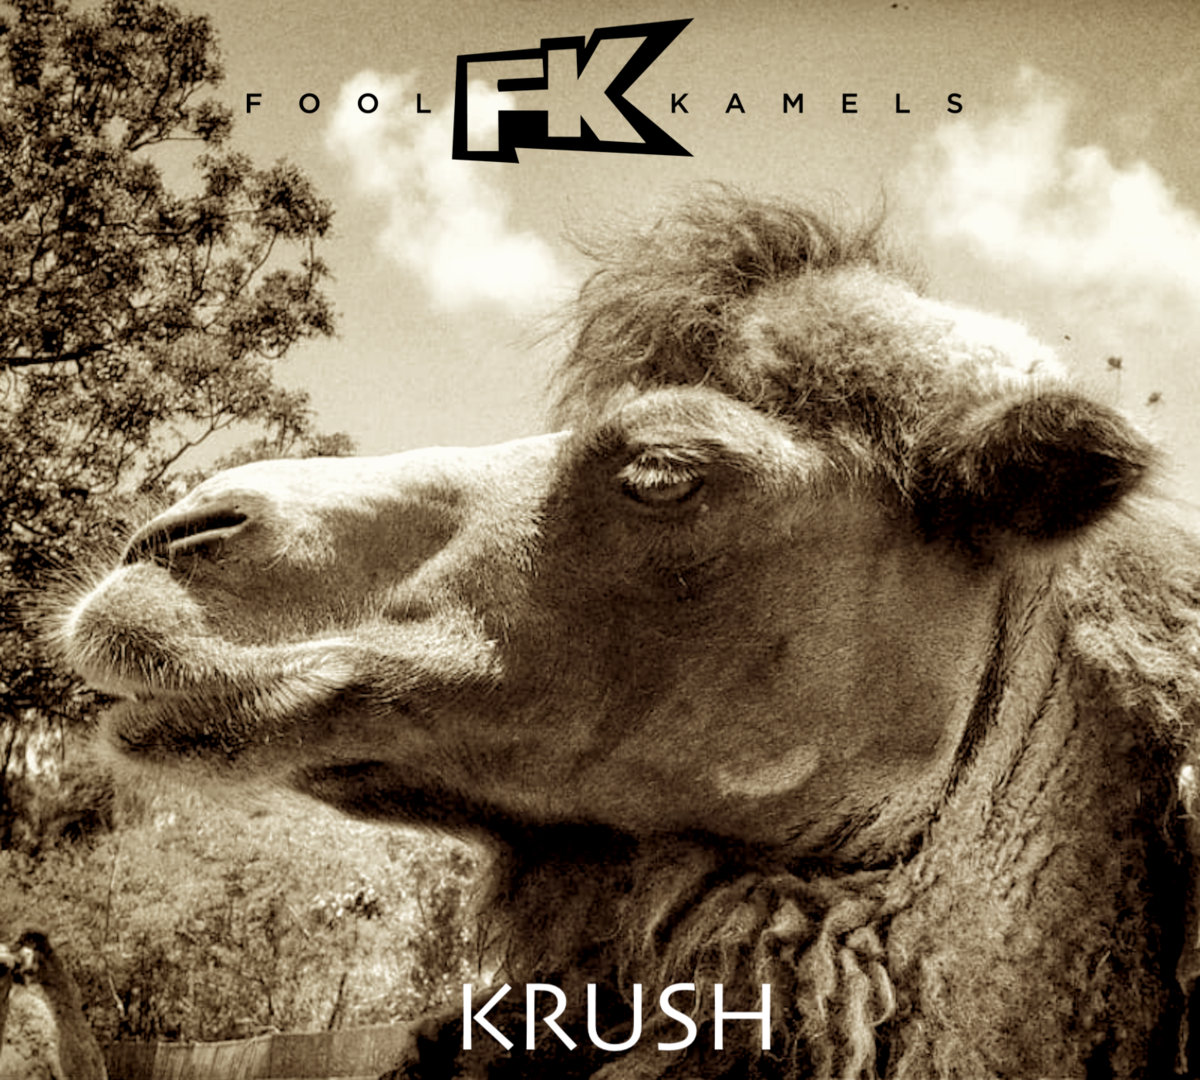 KRUSH by Fool Kamels